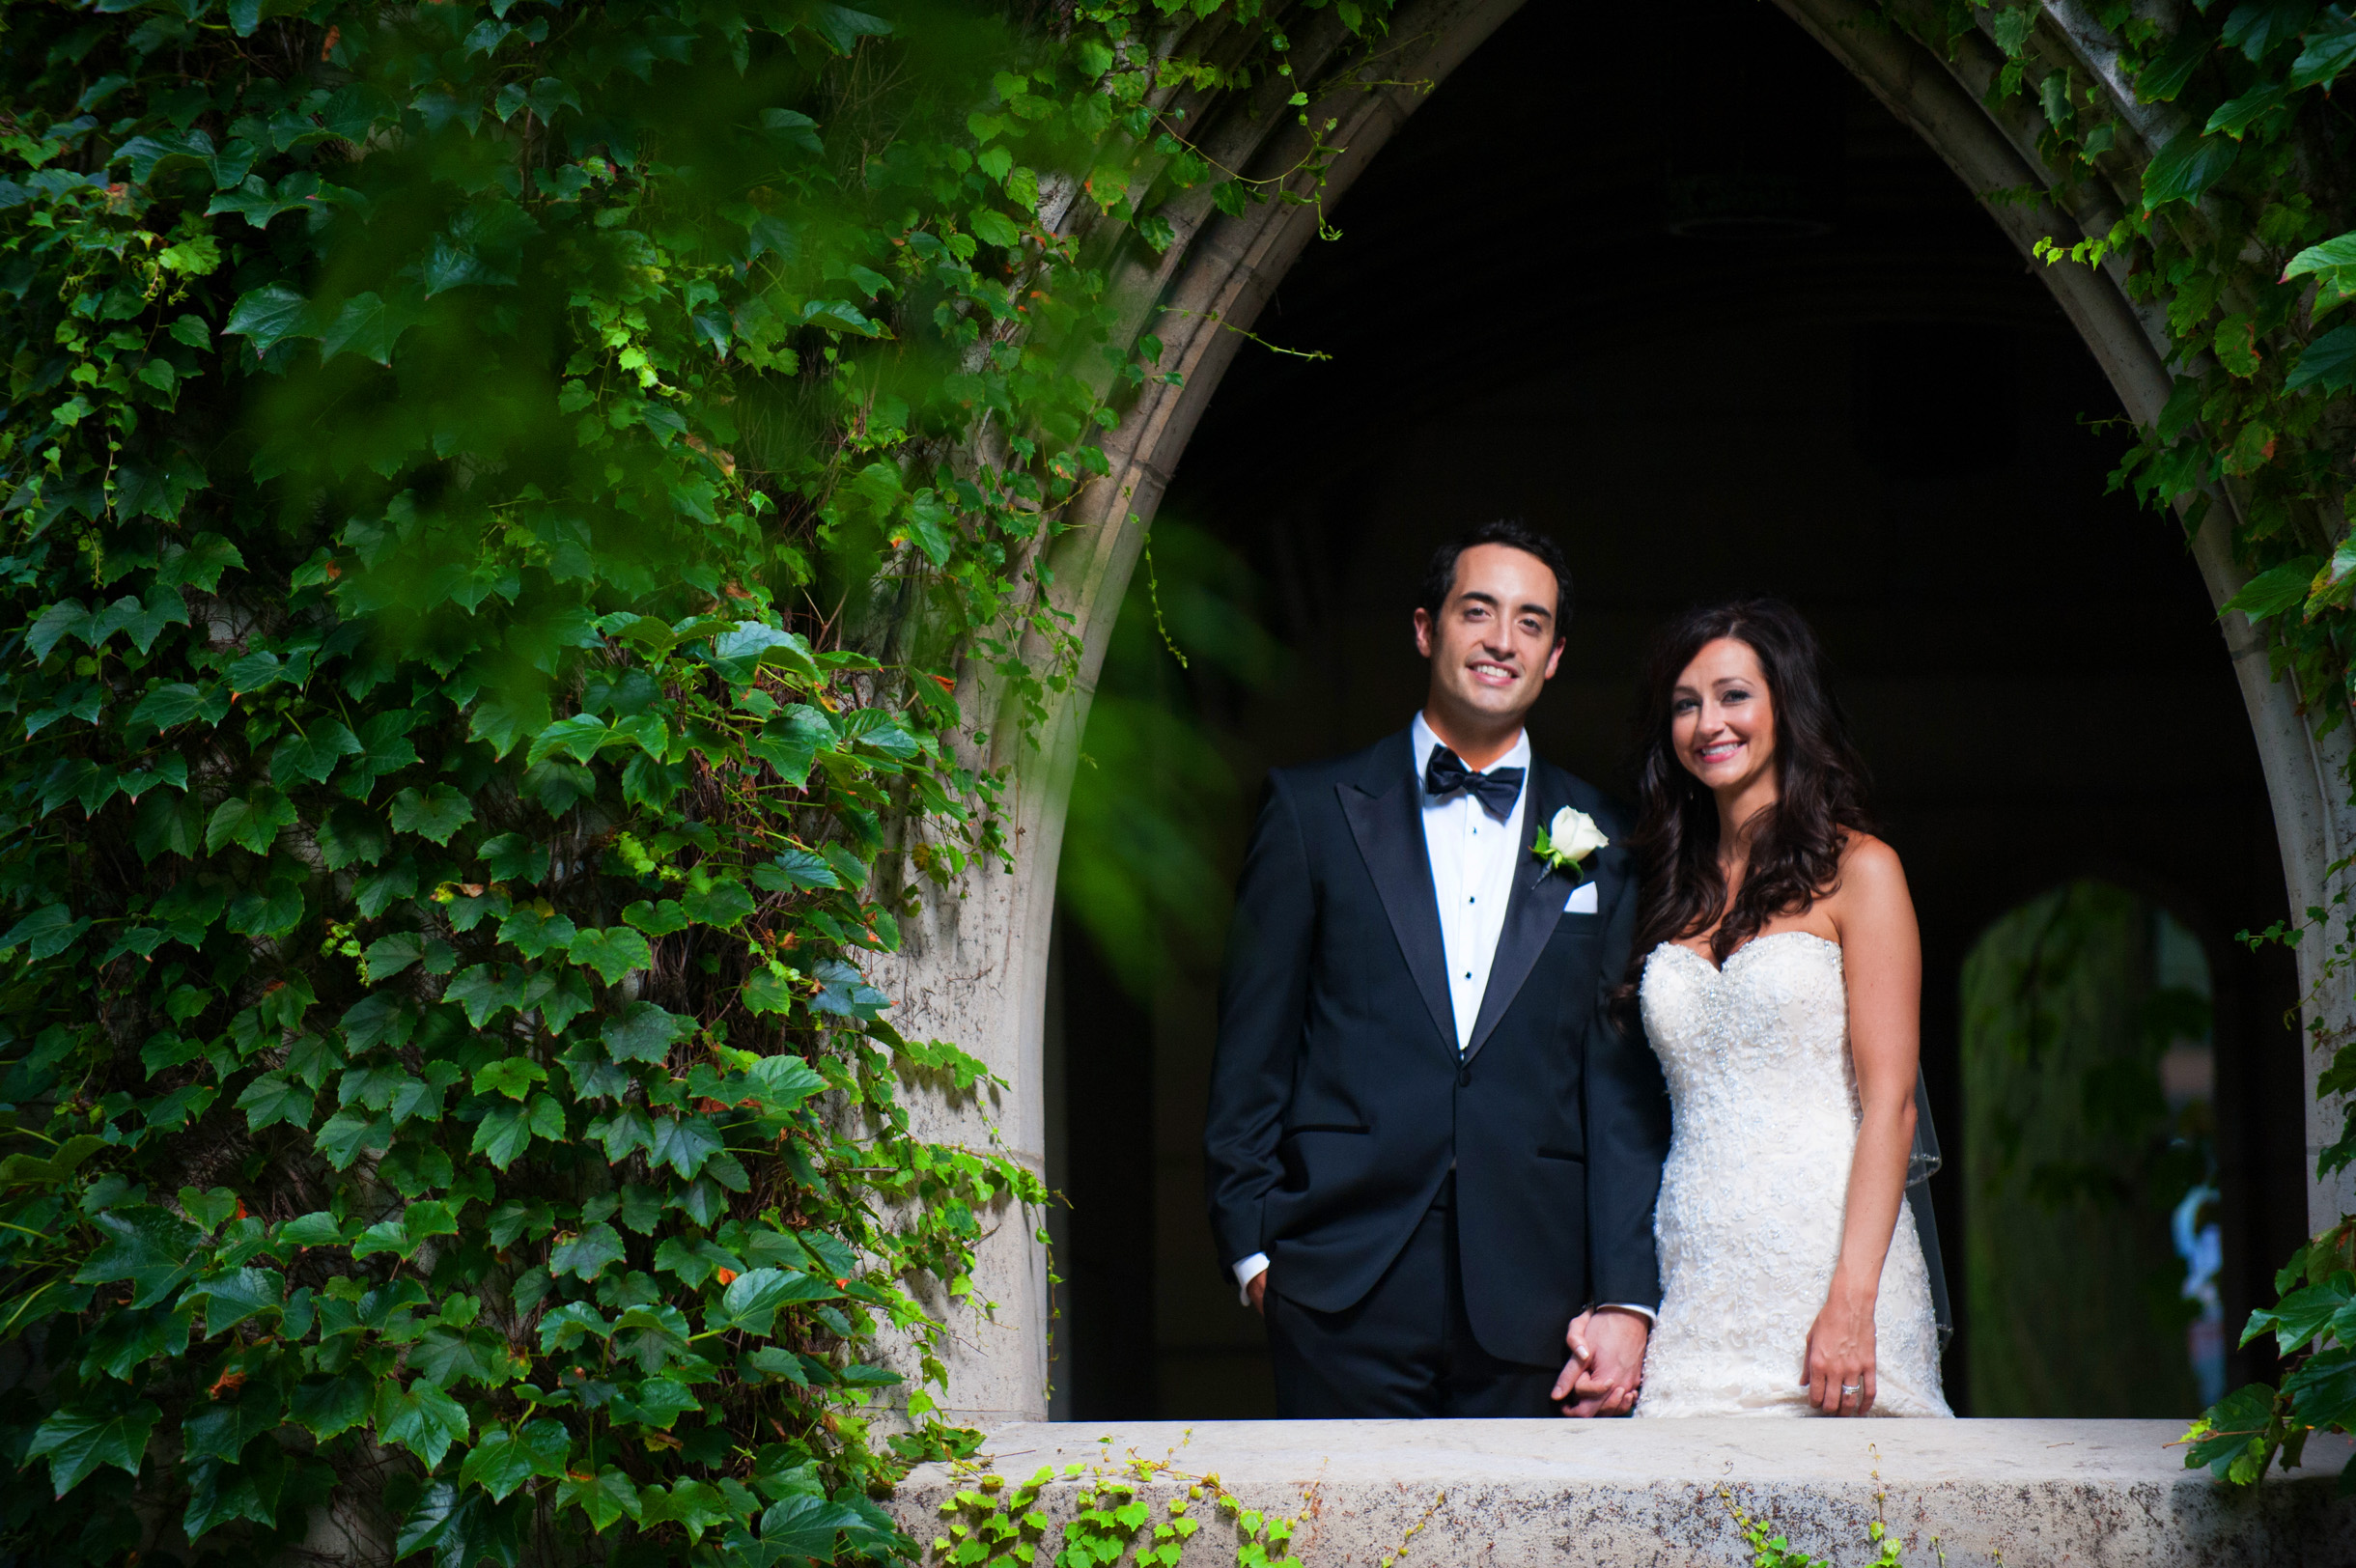 Bride and Groom inside church window with ivy surrounding them